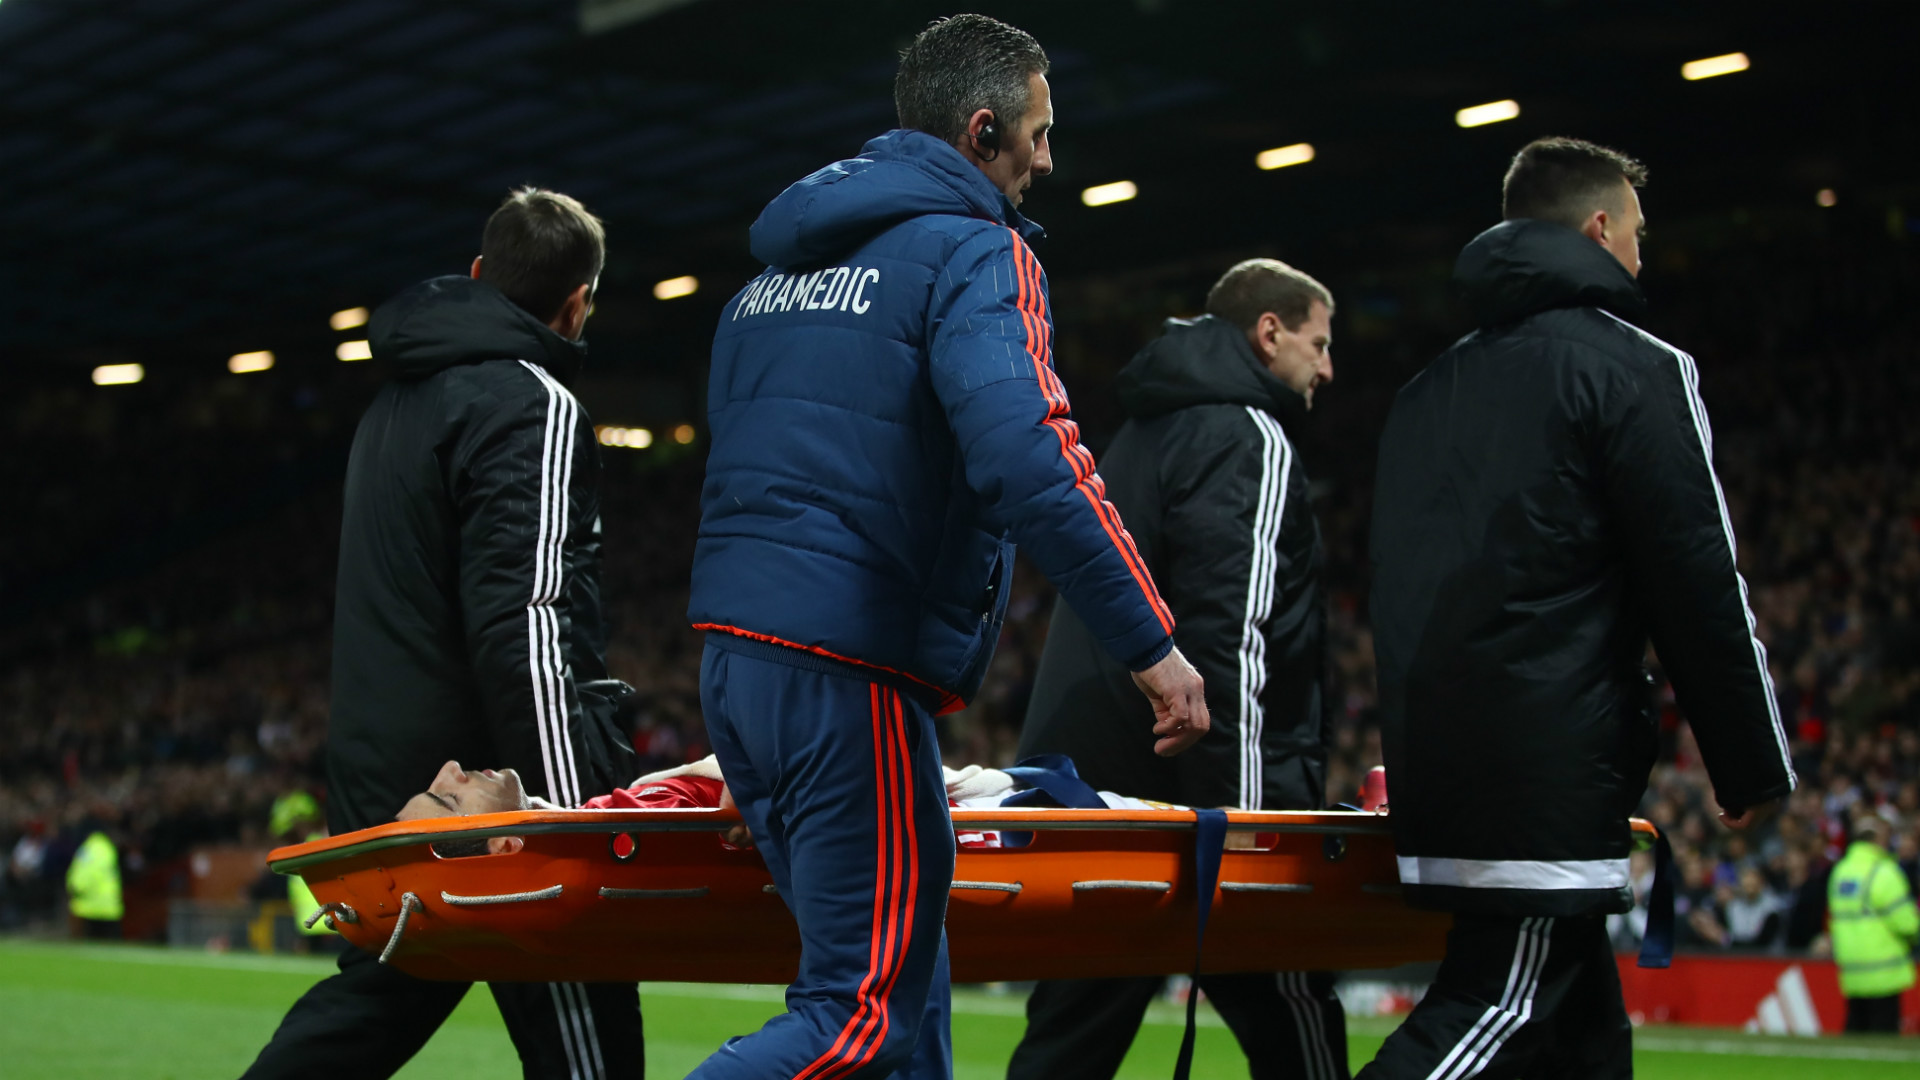 Man United's Henrikh Mkhitaryan is stretchered off in the second half at Old Trafford against Tottenham